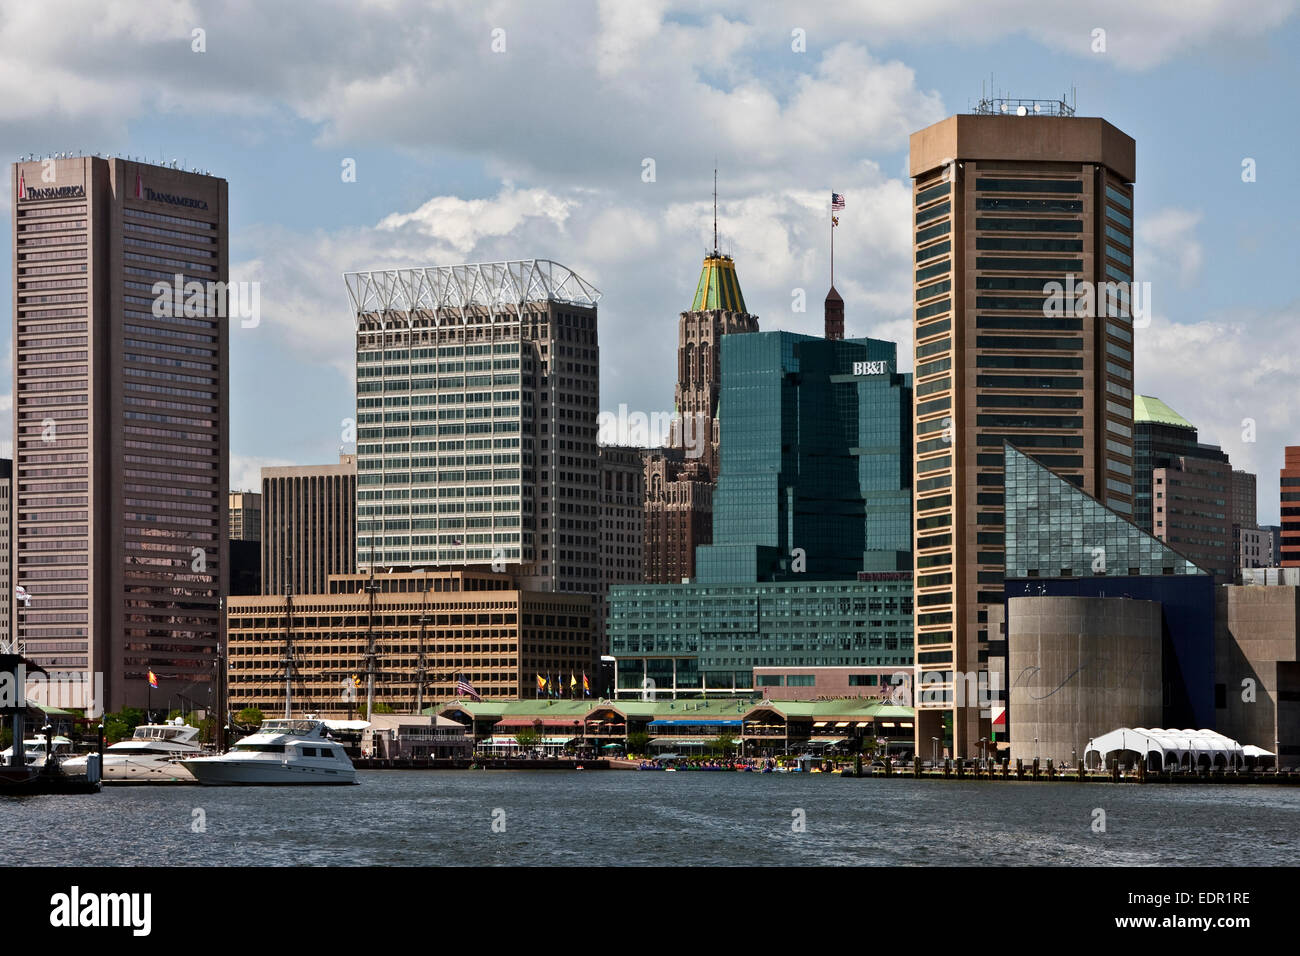 Baltimore, Maryland, Fells Point, Inner Harbor, World Trade Center, national Aquarium in Baltimore, - Stock Image